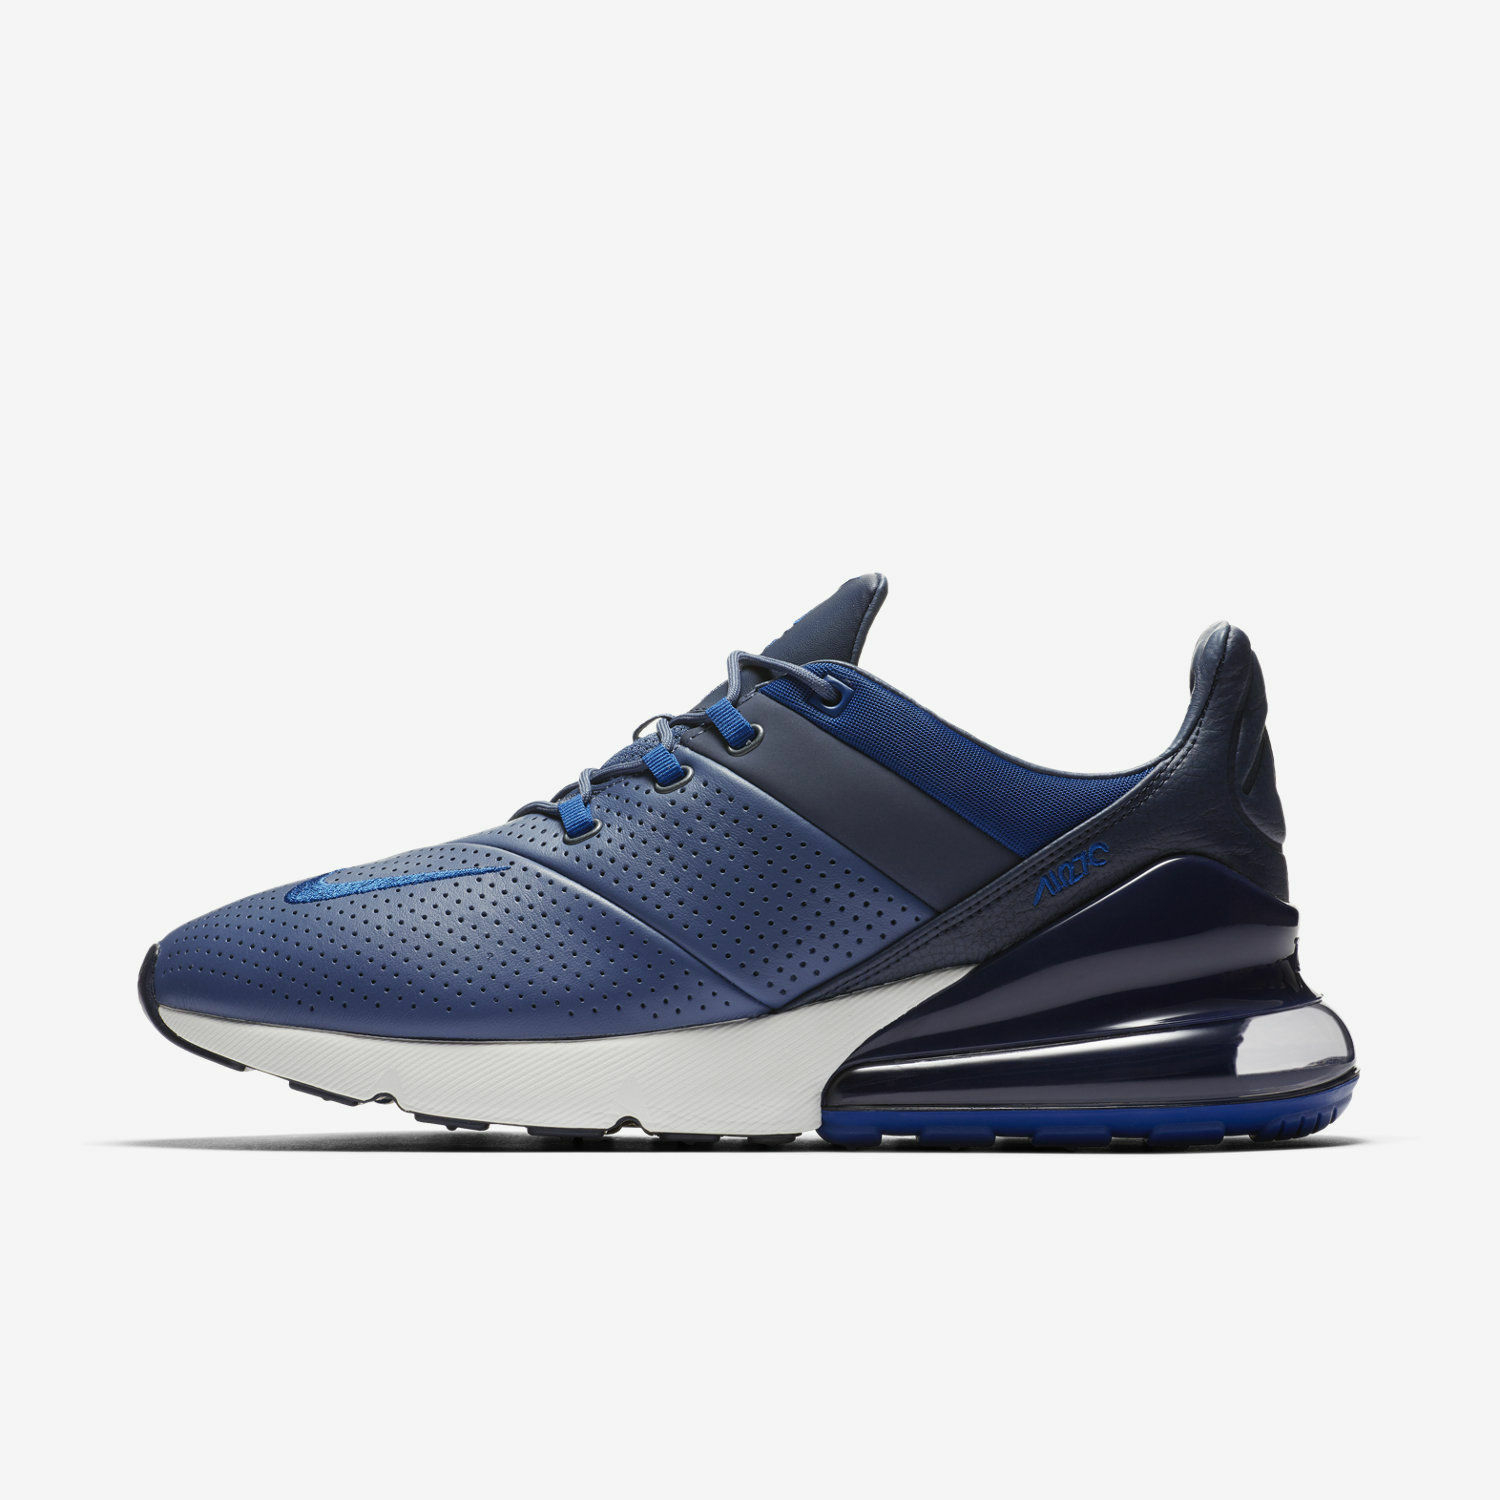 NIKE AIR MAX 270 PREMIUM MEN'S SHOES DIFFUSED blueE GYM blueE AO8283 400